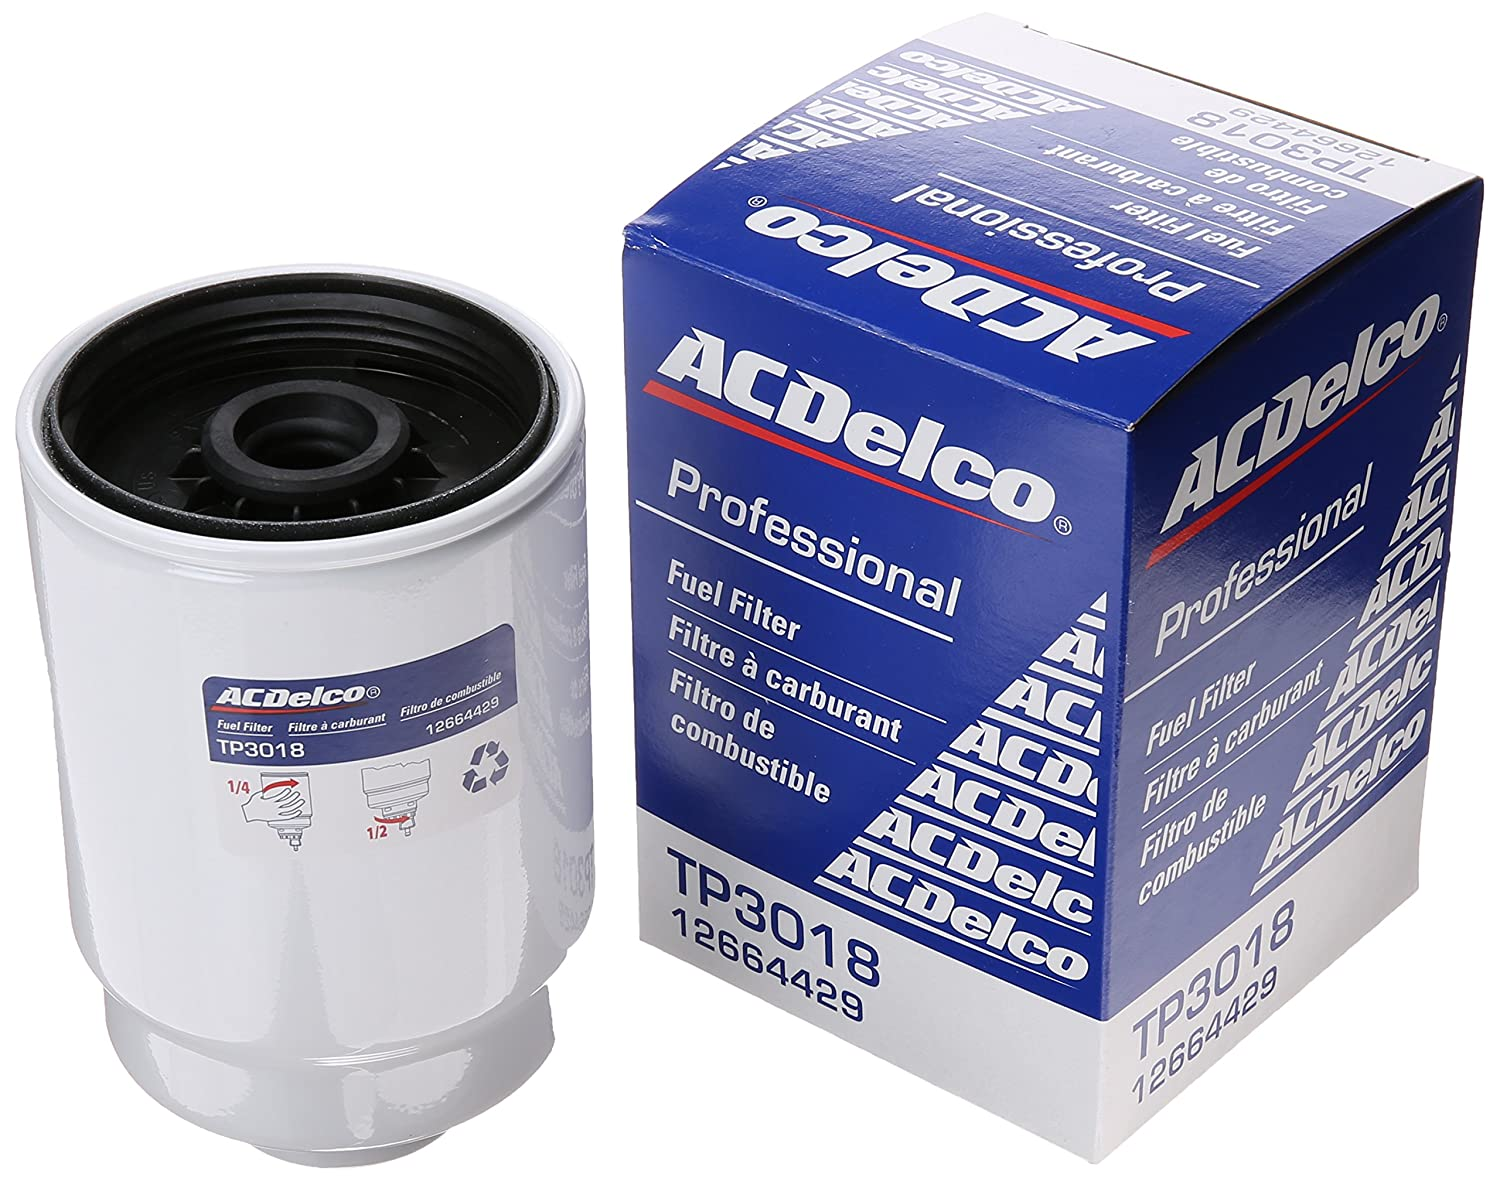 Fuel Filters Replacement Parts Automotive 2004 Jeep Filter Location Acdelco Tp3018 Professional With Seals